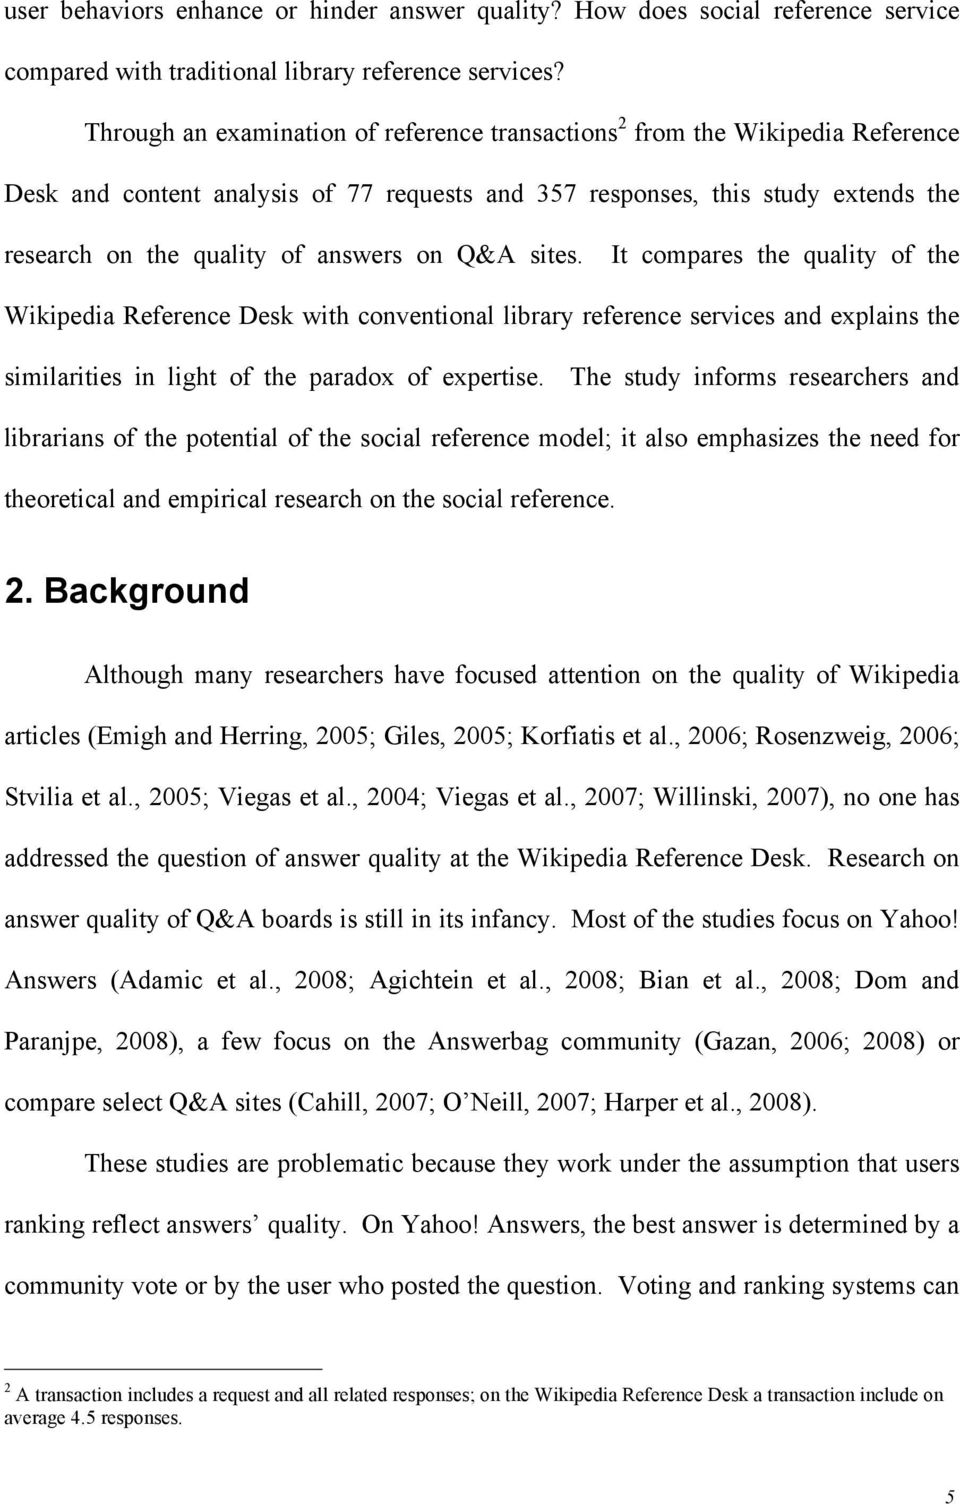 on Q&A sites. It compares the quality of the Wikipedia Reference Desk with conventional library reference services and explains the similarities in light of the paradox of expertise.